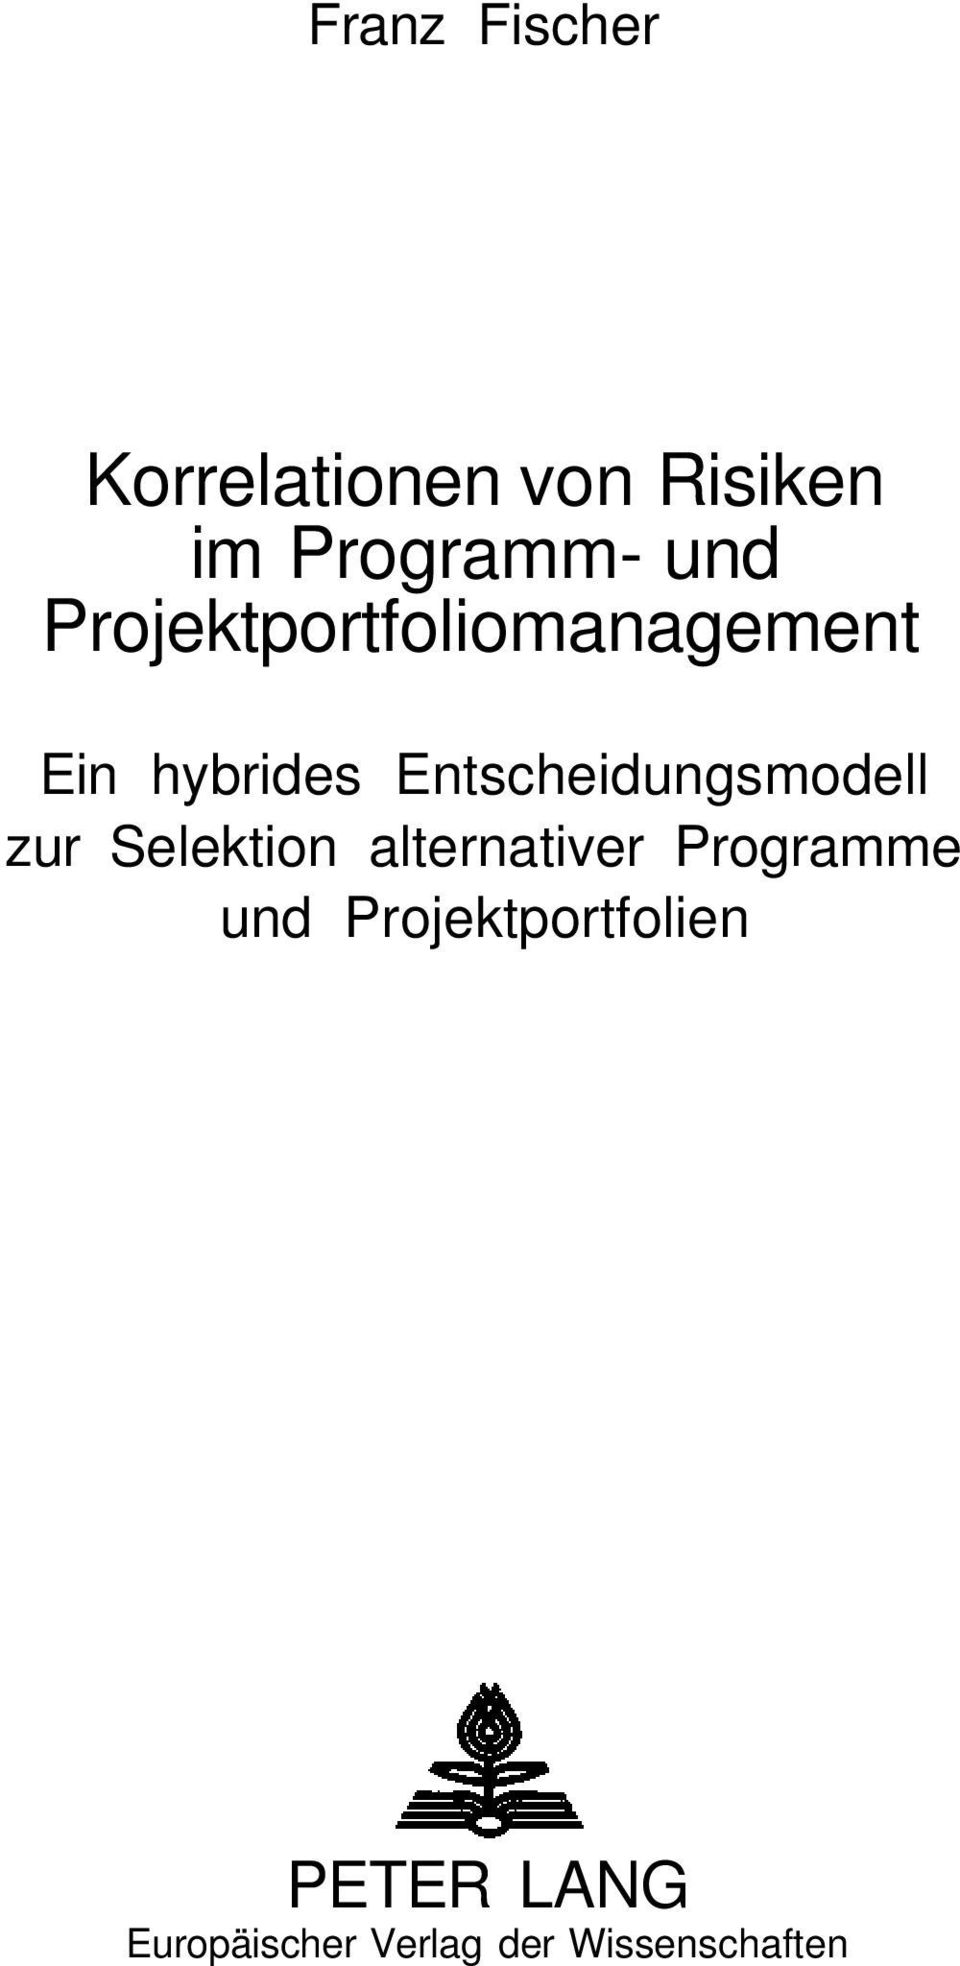 Entscheidungsmodell zur Selektion alternativer Programme